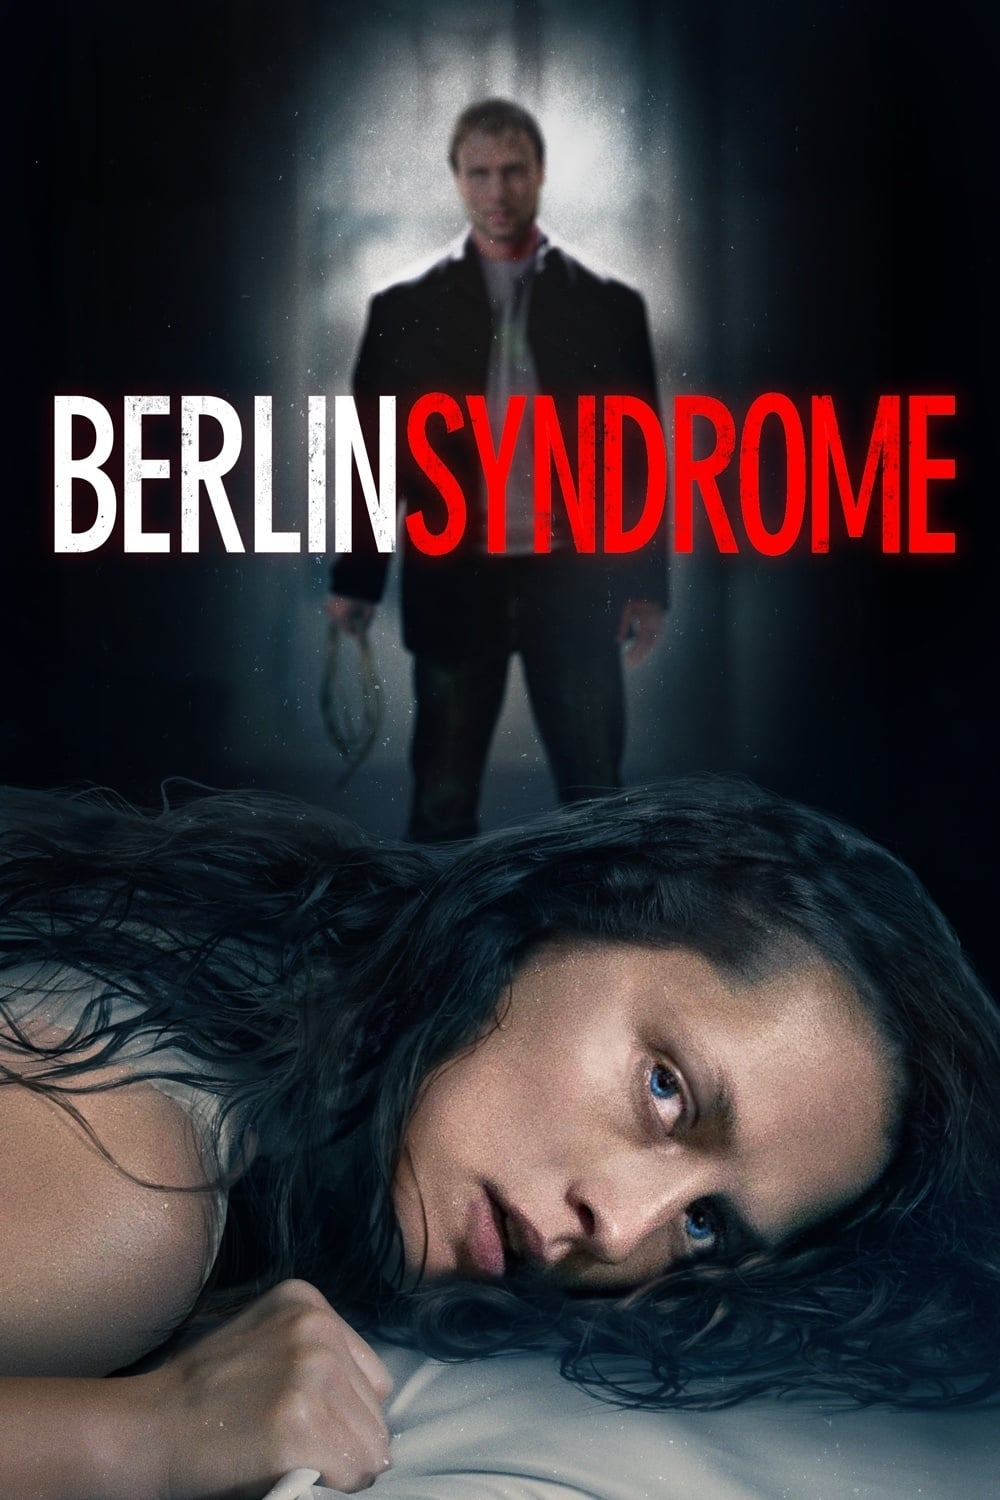 berlin syndrome movie4k